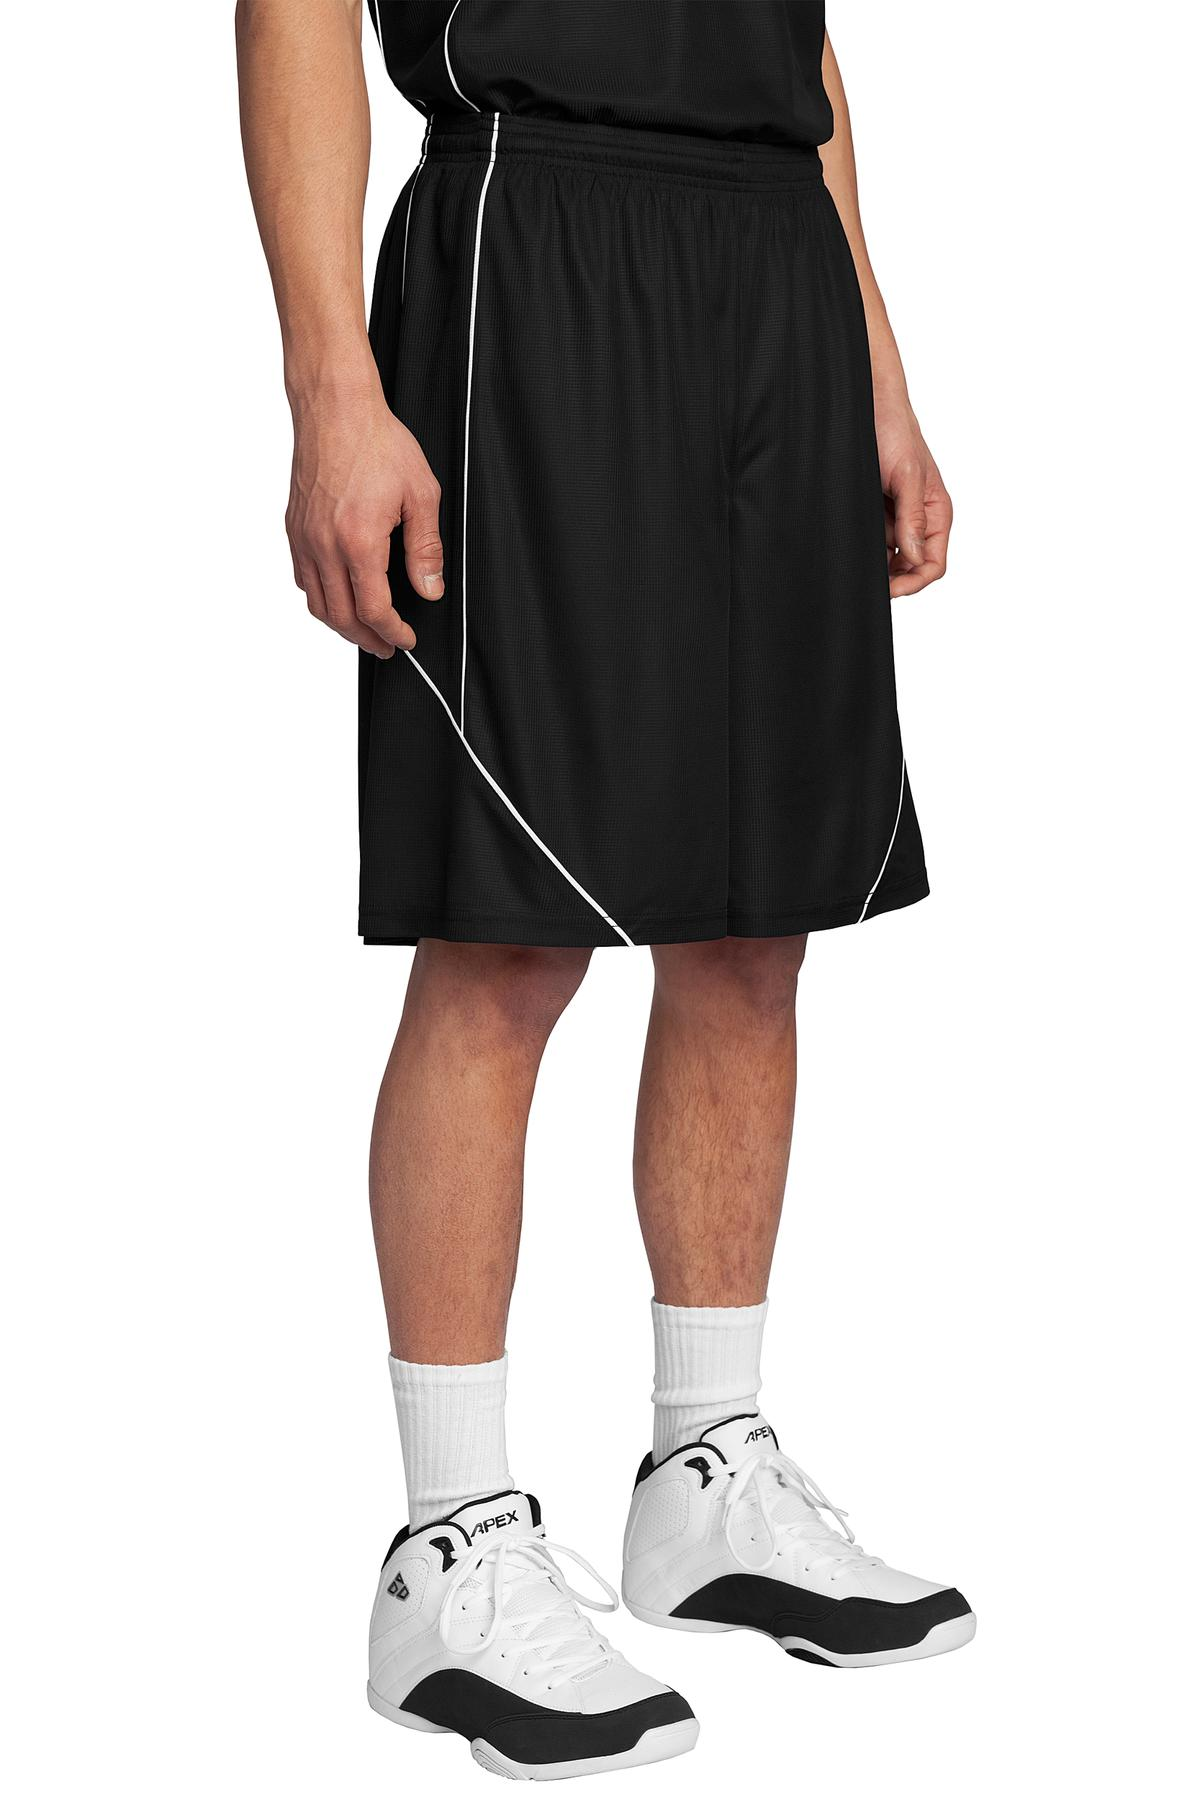 Sport-Tek ®  PosiCharge ®  Mesh Reversible Spliced Short. T565 - Black